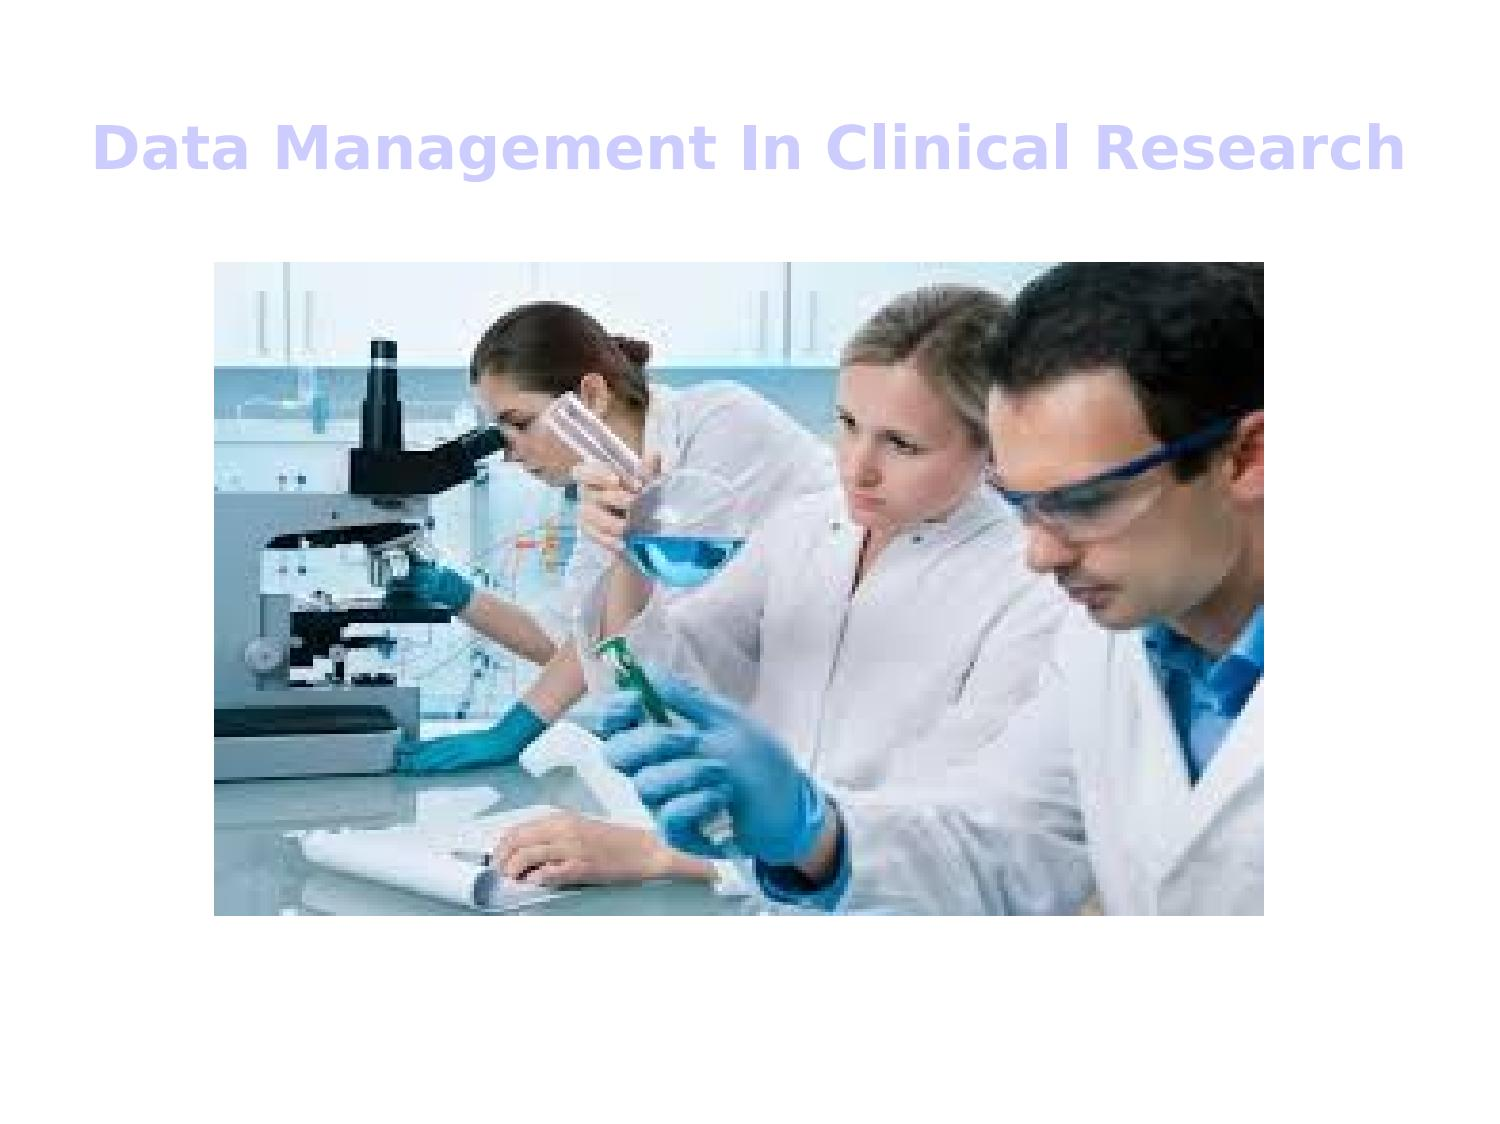 Data management in clinical research by radhika nagare  Issuu